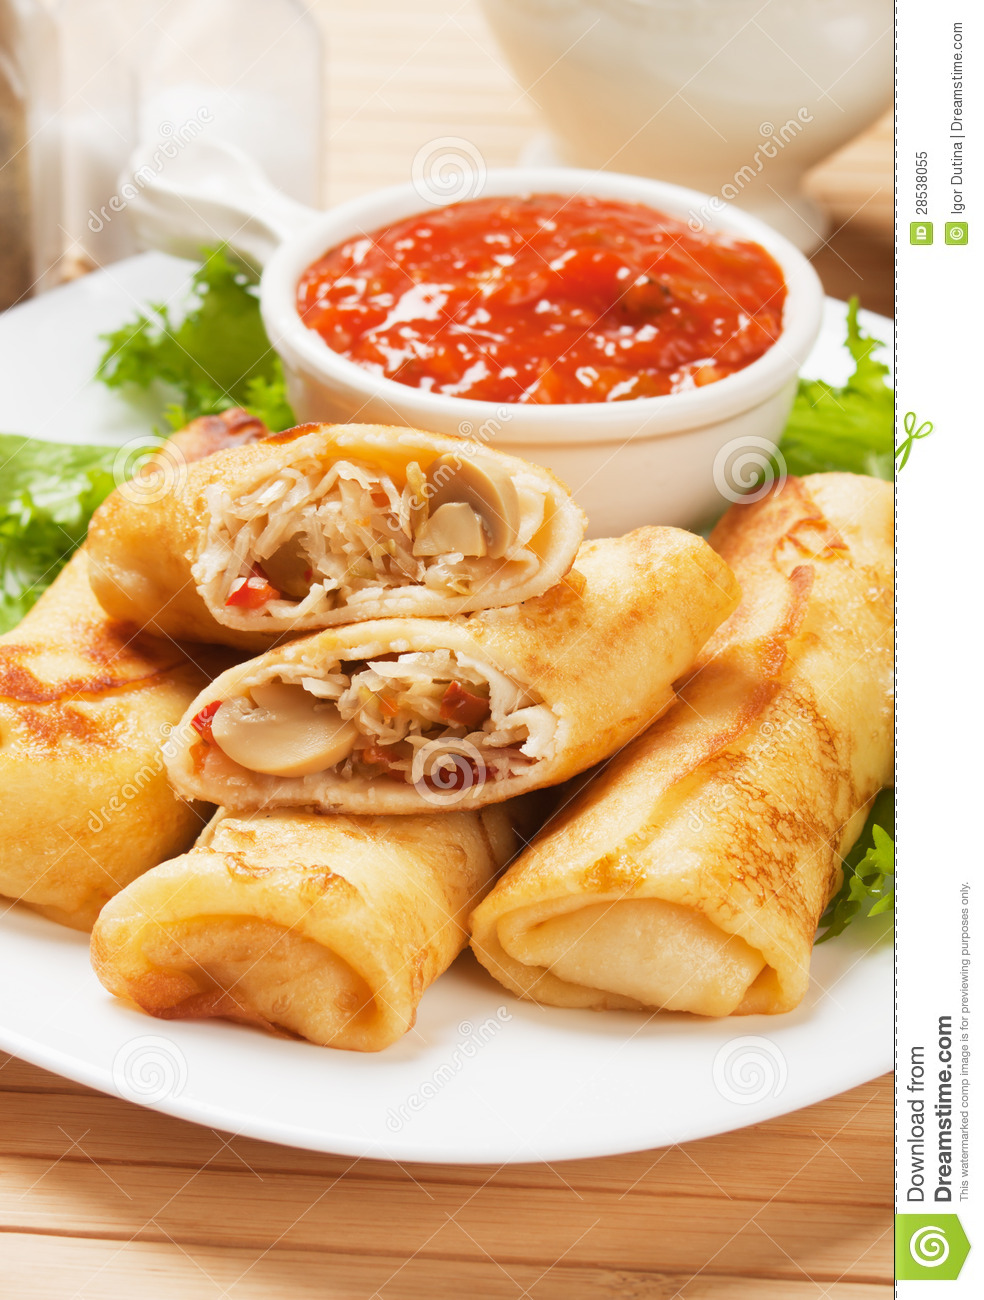 free clipart spring rolls - photo #42